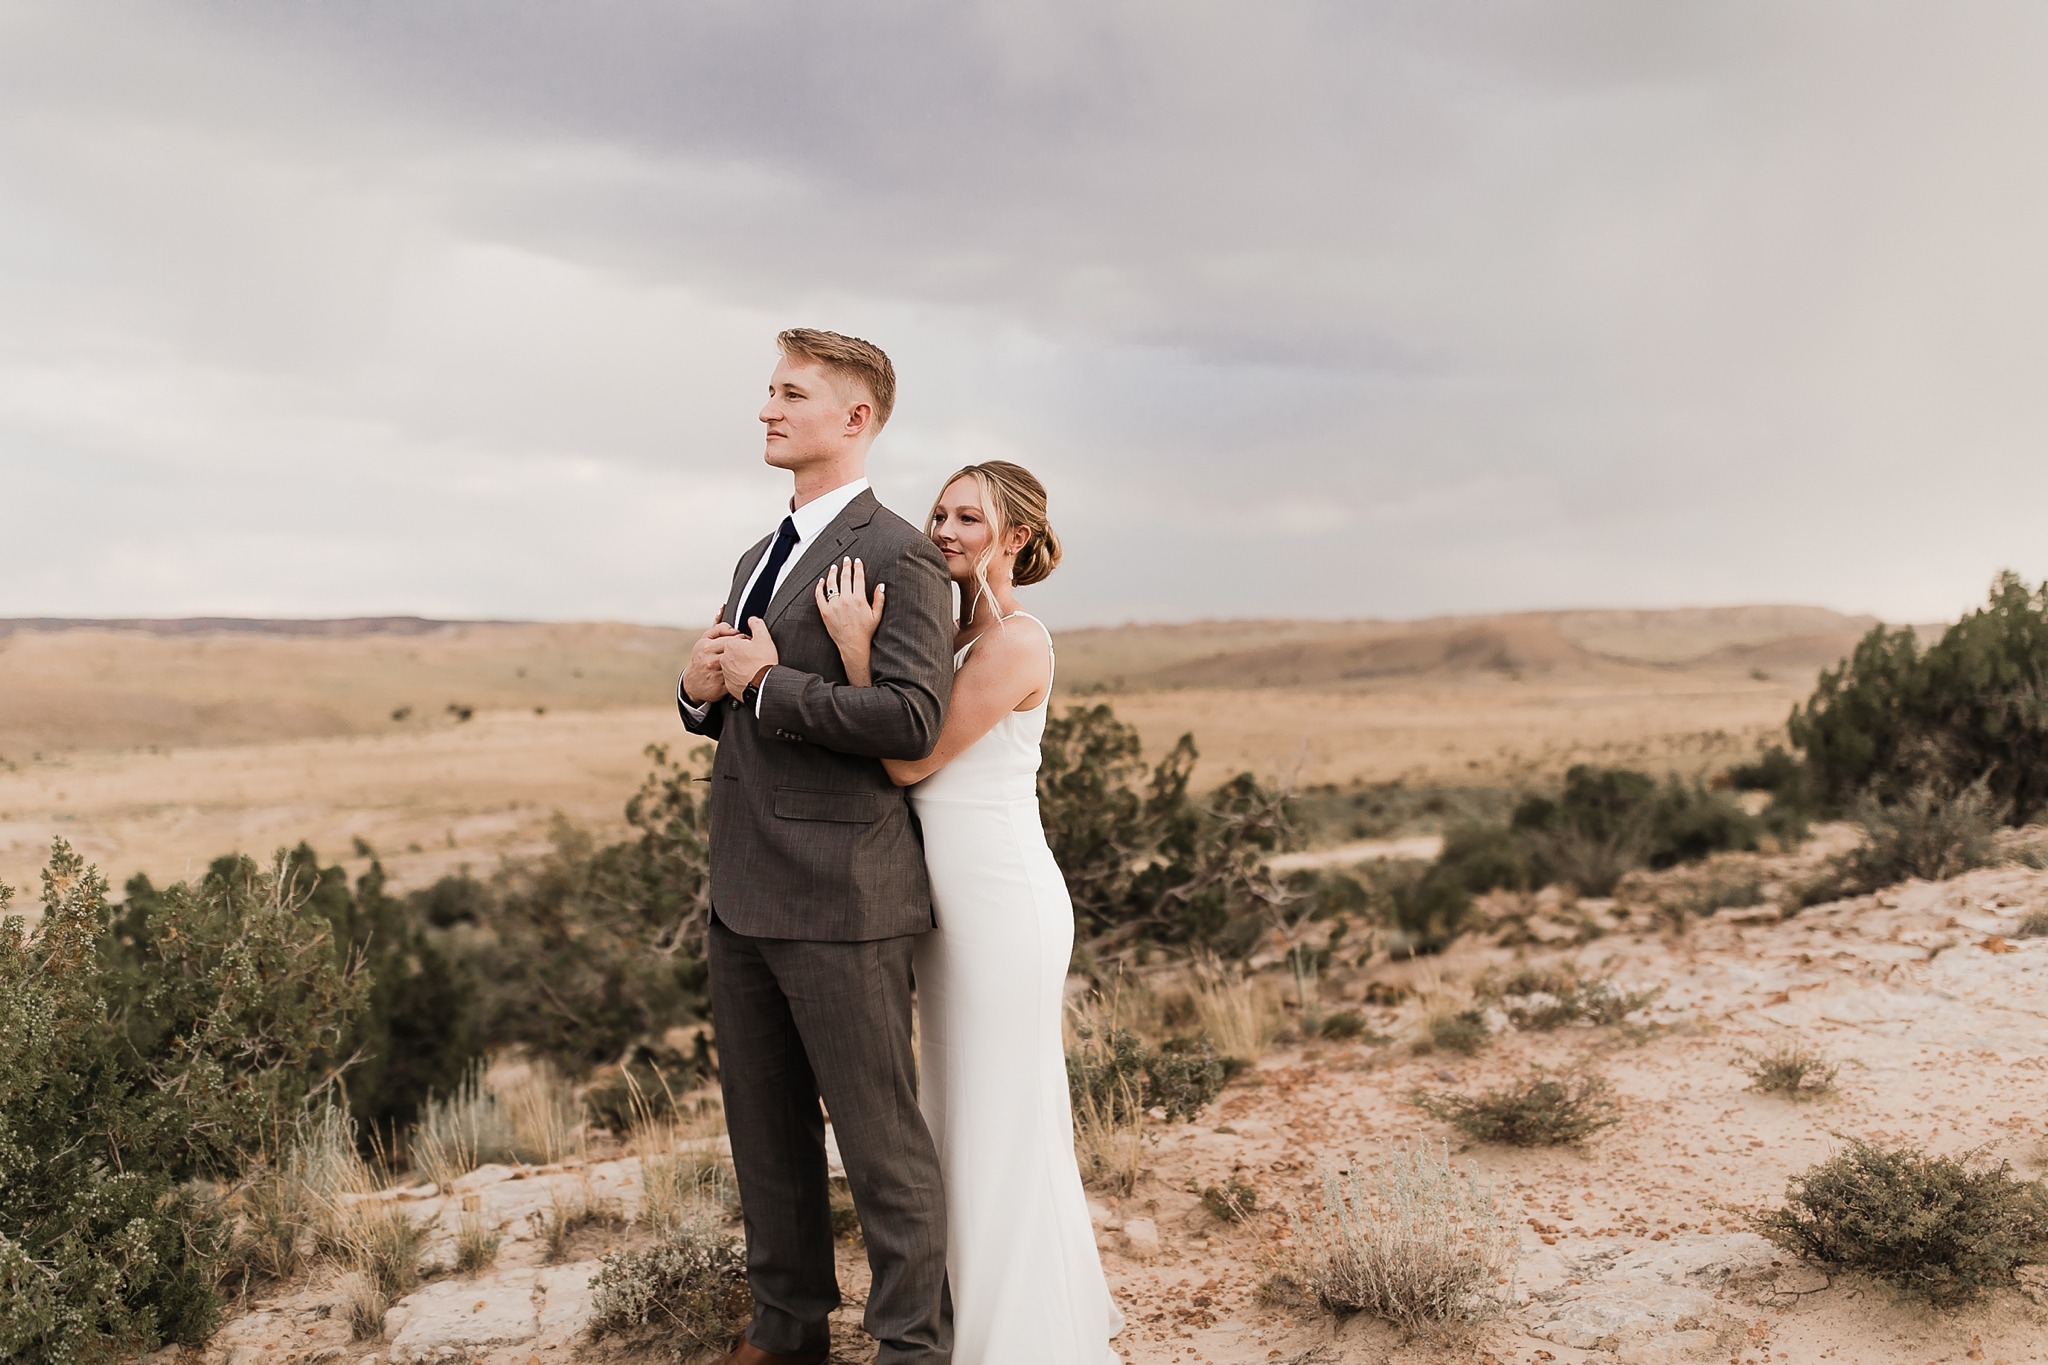 Alicia+lucia+photography+-+albuquerque+wedding+photographer+-+santa+fe+wedding+photography+-+new+mexico+wedding+photographer+-+new+mexico+wedding+-+new+mexico+elopement+-+elopment+-+mountain+elopement_0015.jpg